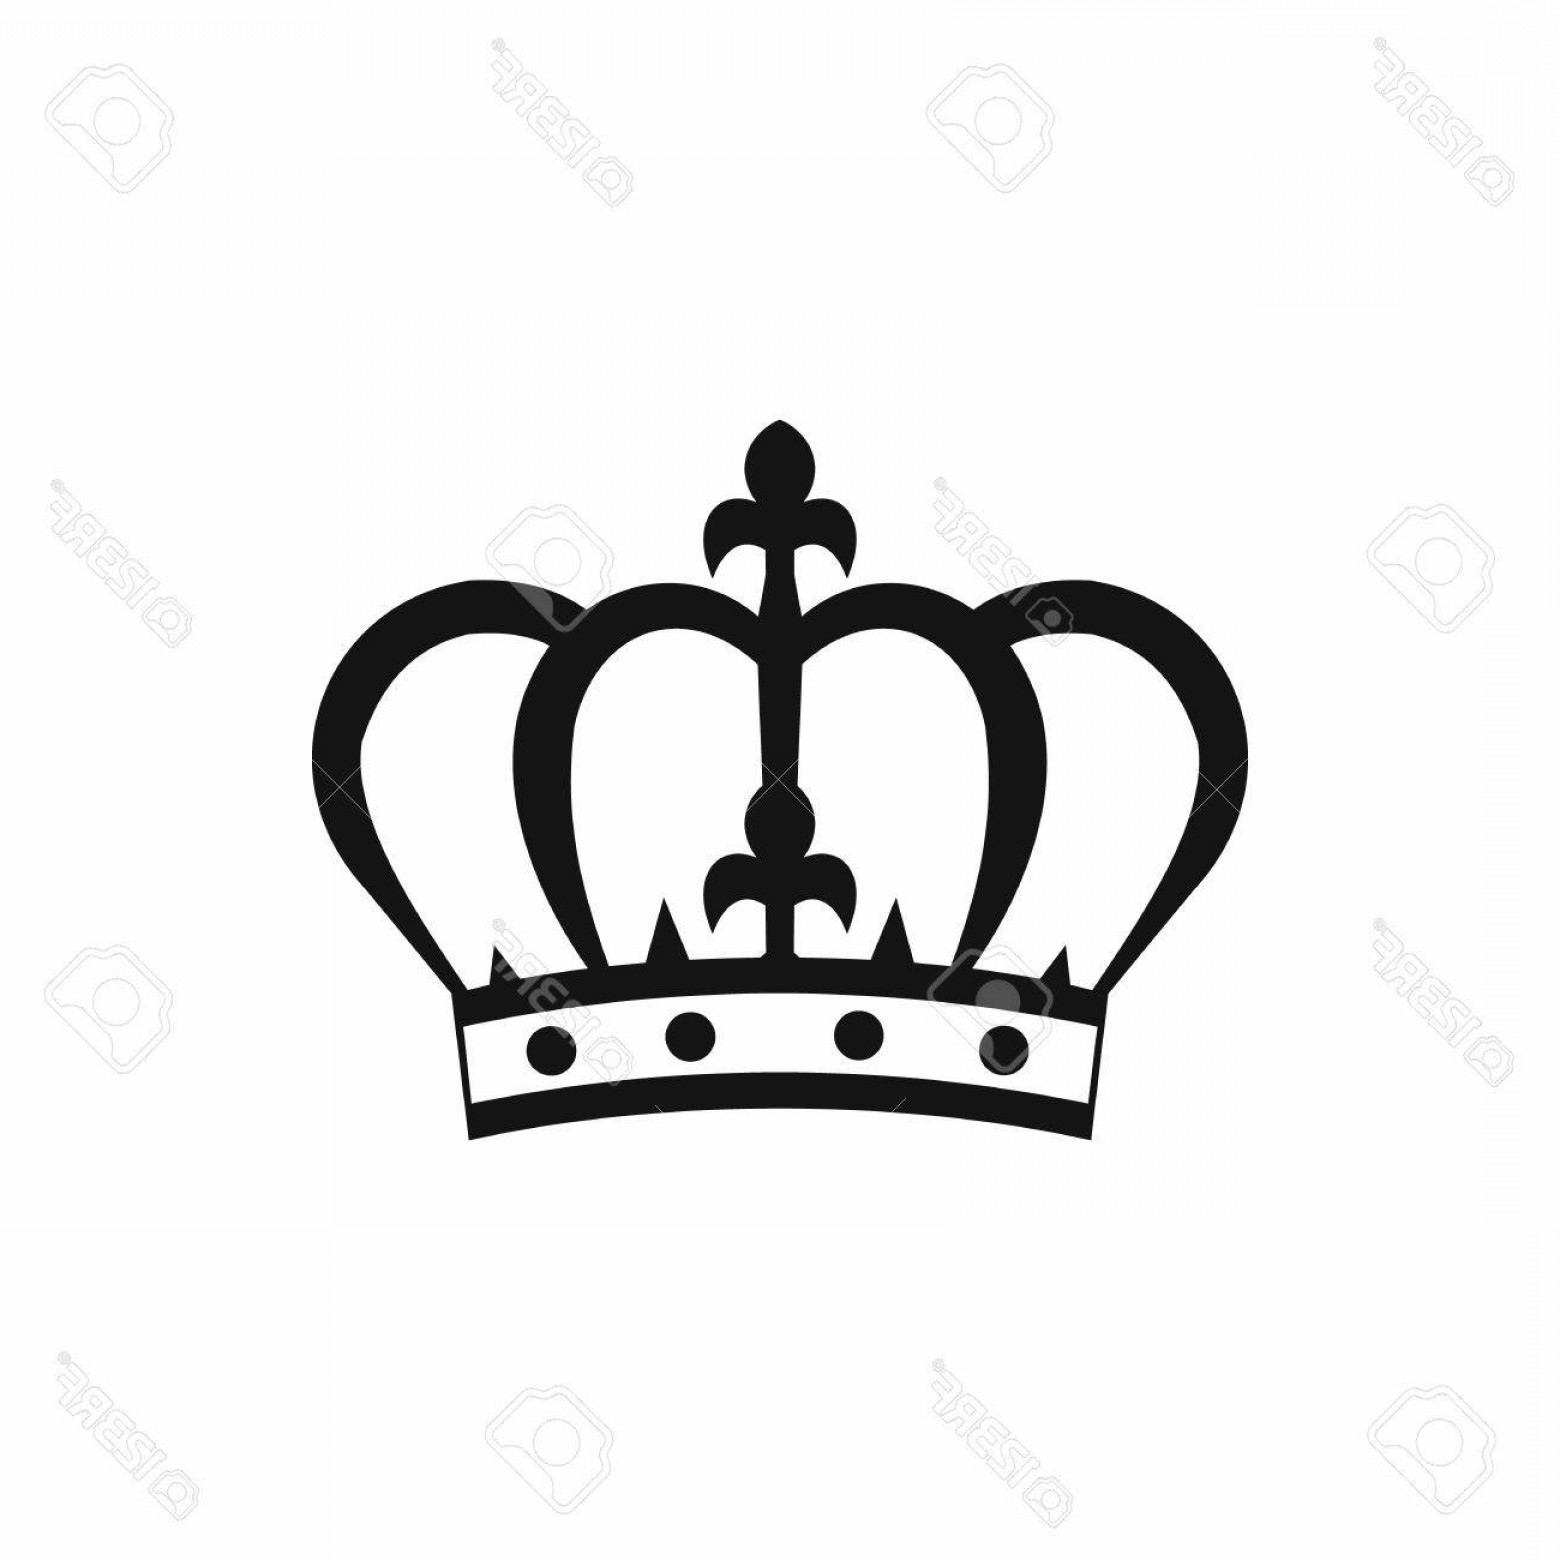 Queen Crown Silhouette At Getdrawings